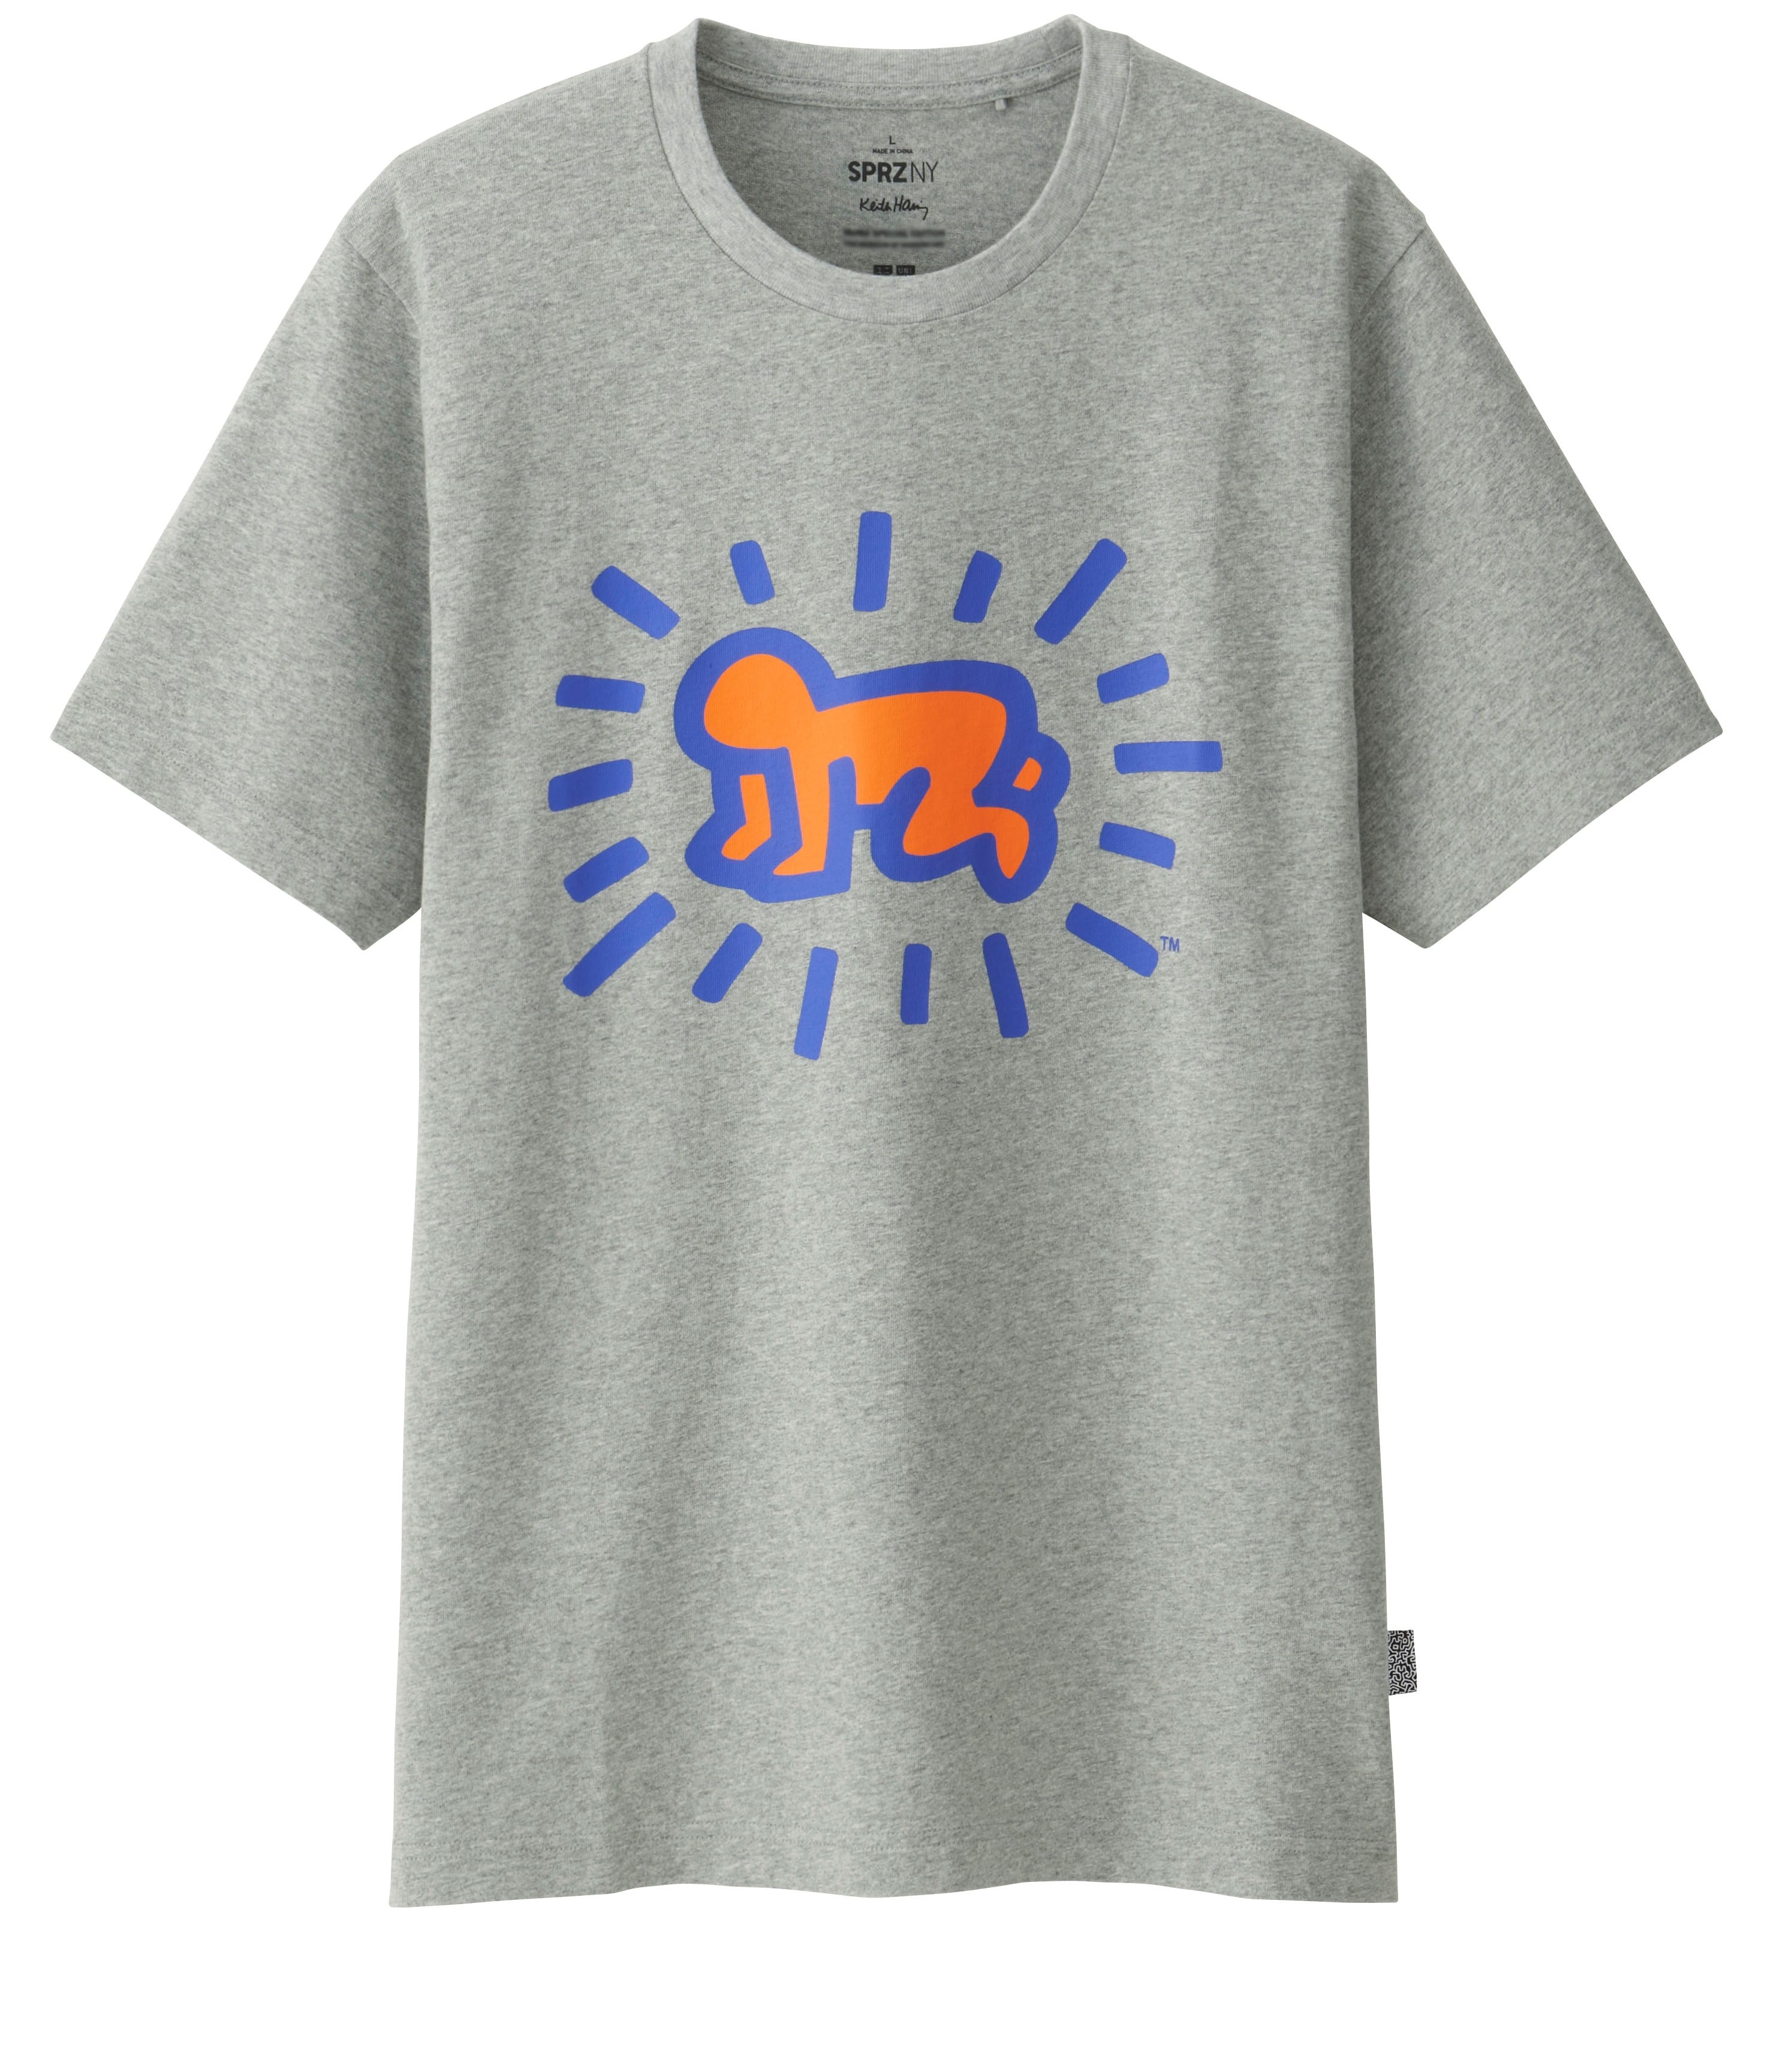 sprz-k-haring-ss-graphic-teepop_19-90_192246_03_347n189a_a1_s